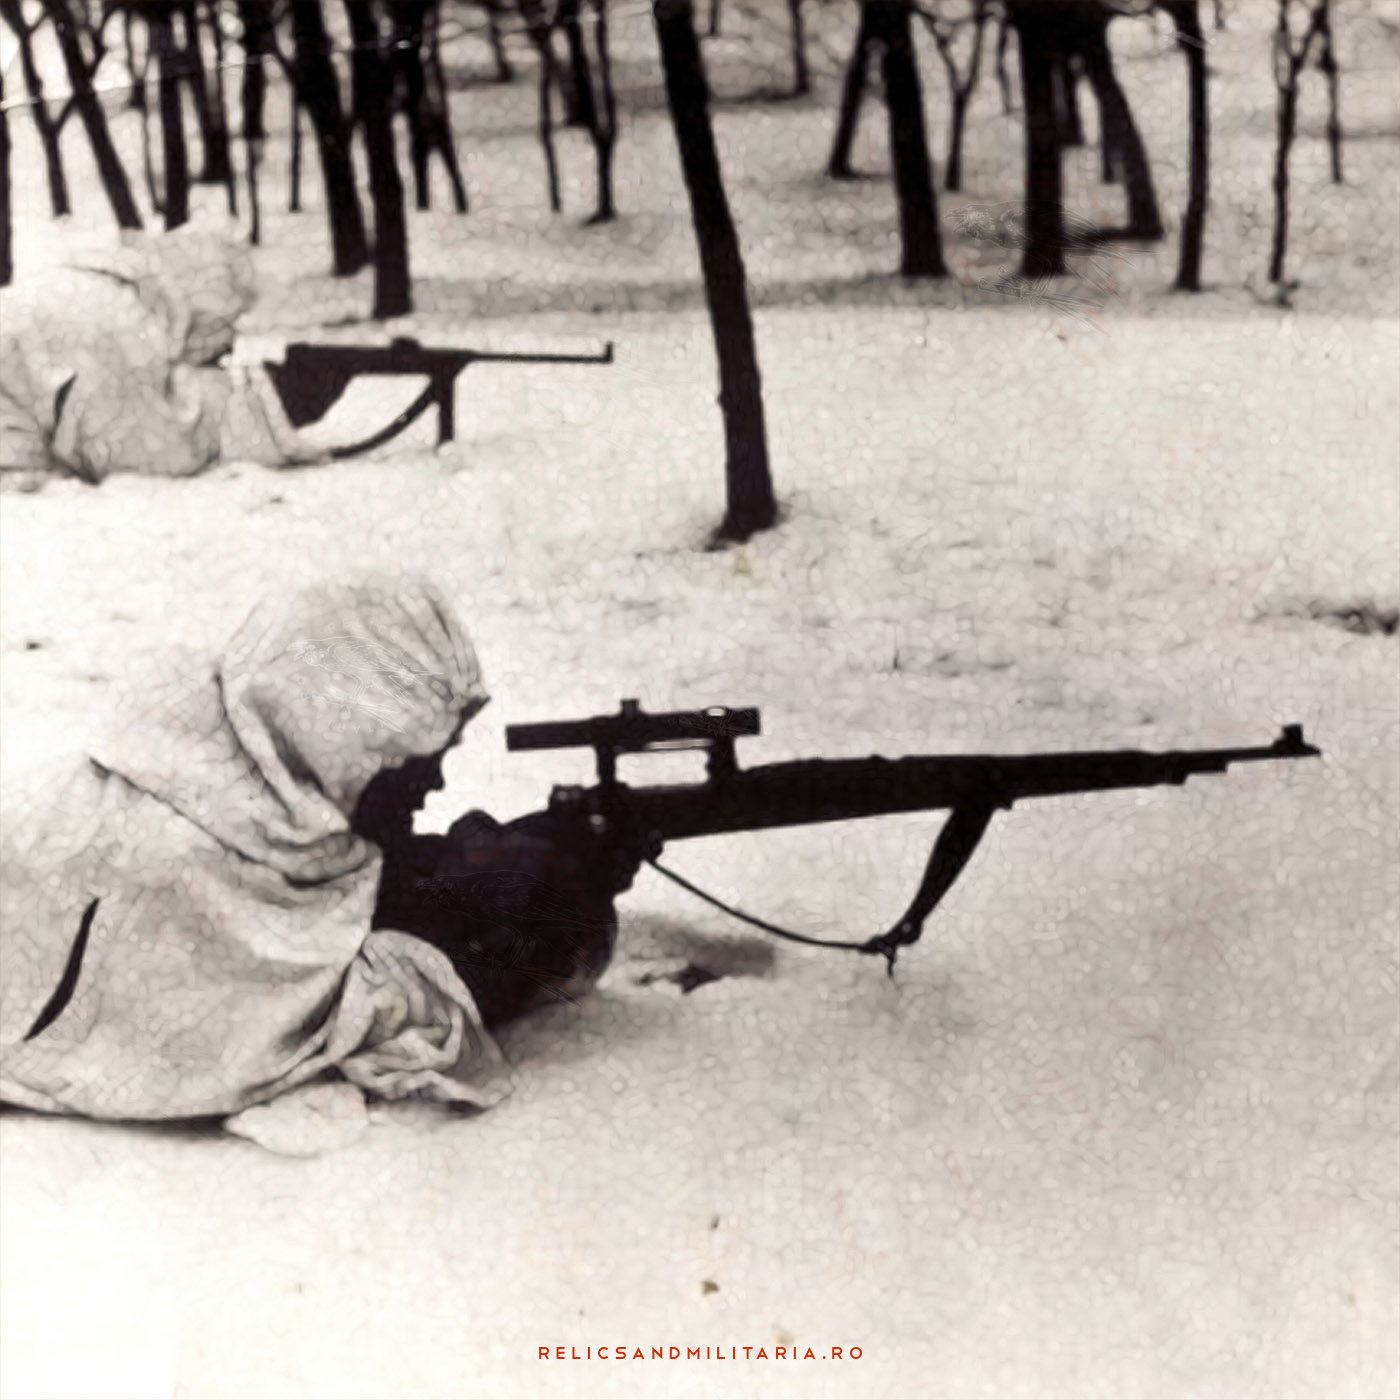 Romanian Army snipers in World War Two